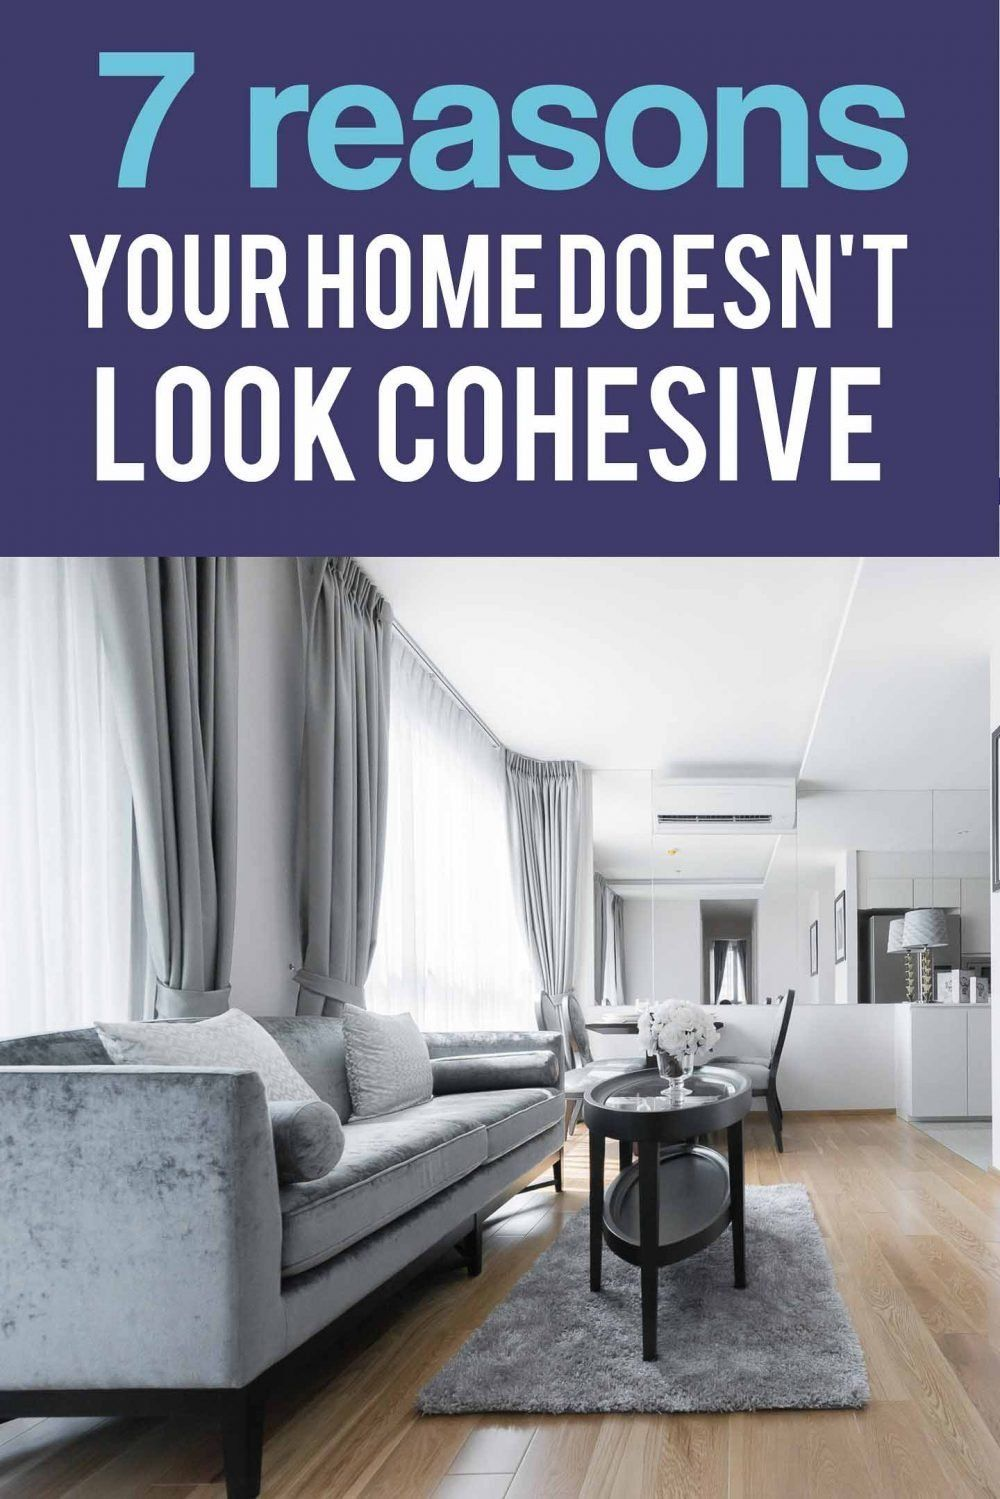 Find some easy ideas and decorating tips for tying together rooms in your home that will make your house look cohesive. #fromhousetohome #homedecorideas #decoratingideas  #decoratingtips #interiordecoratingtips